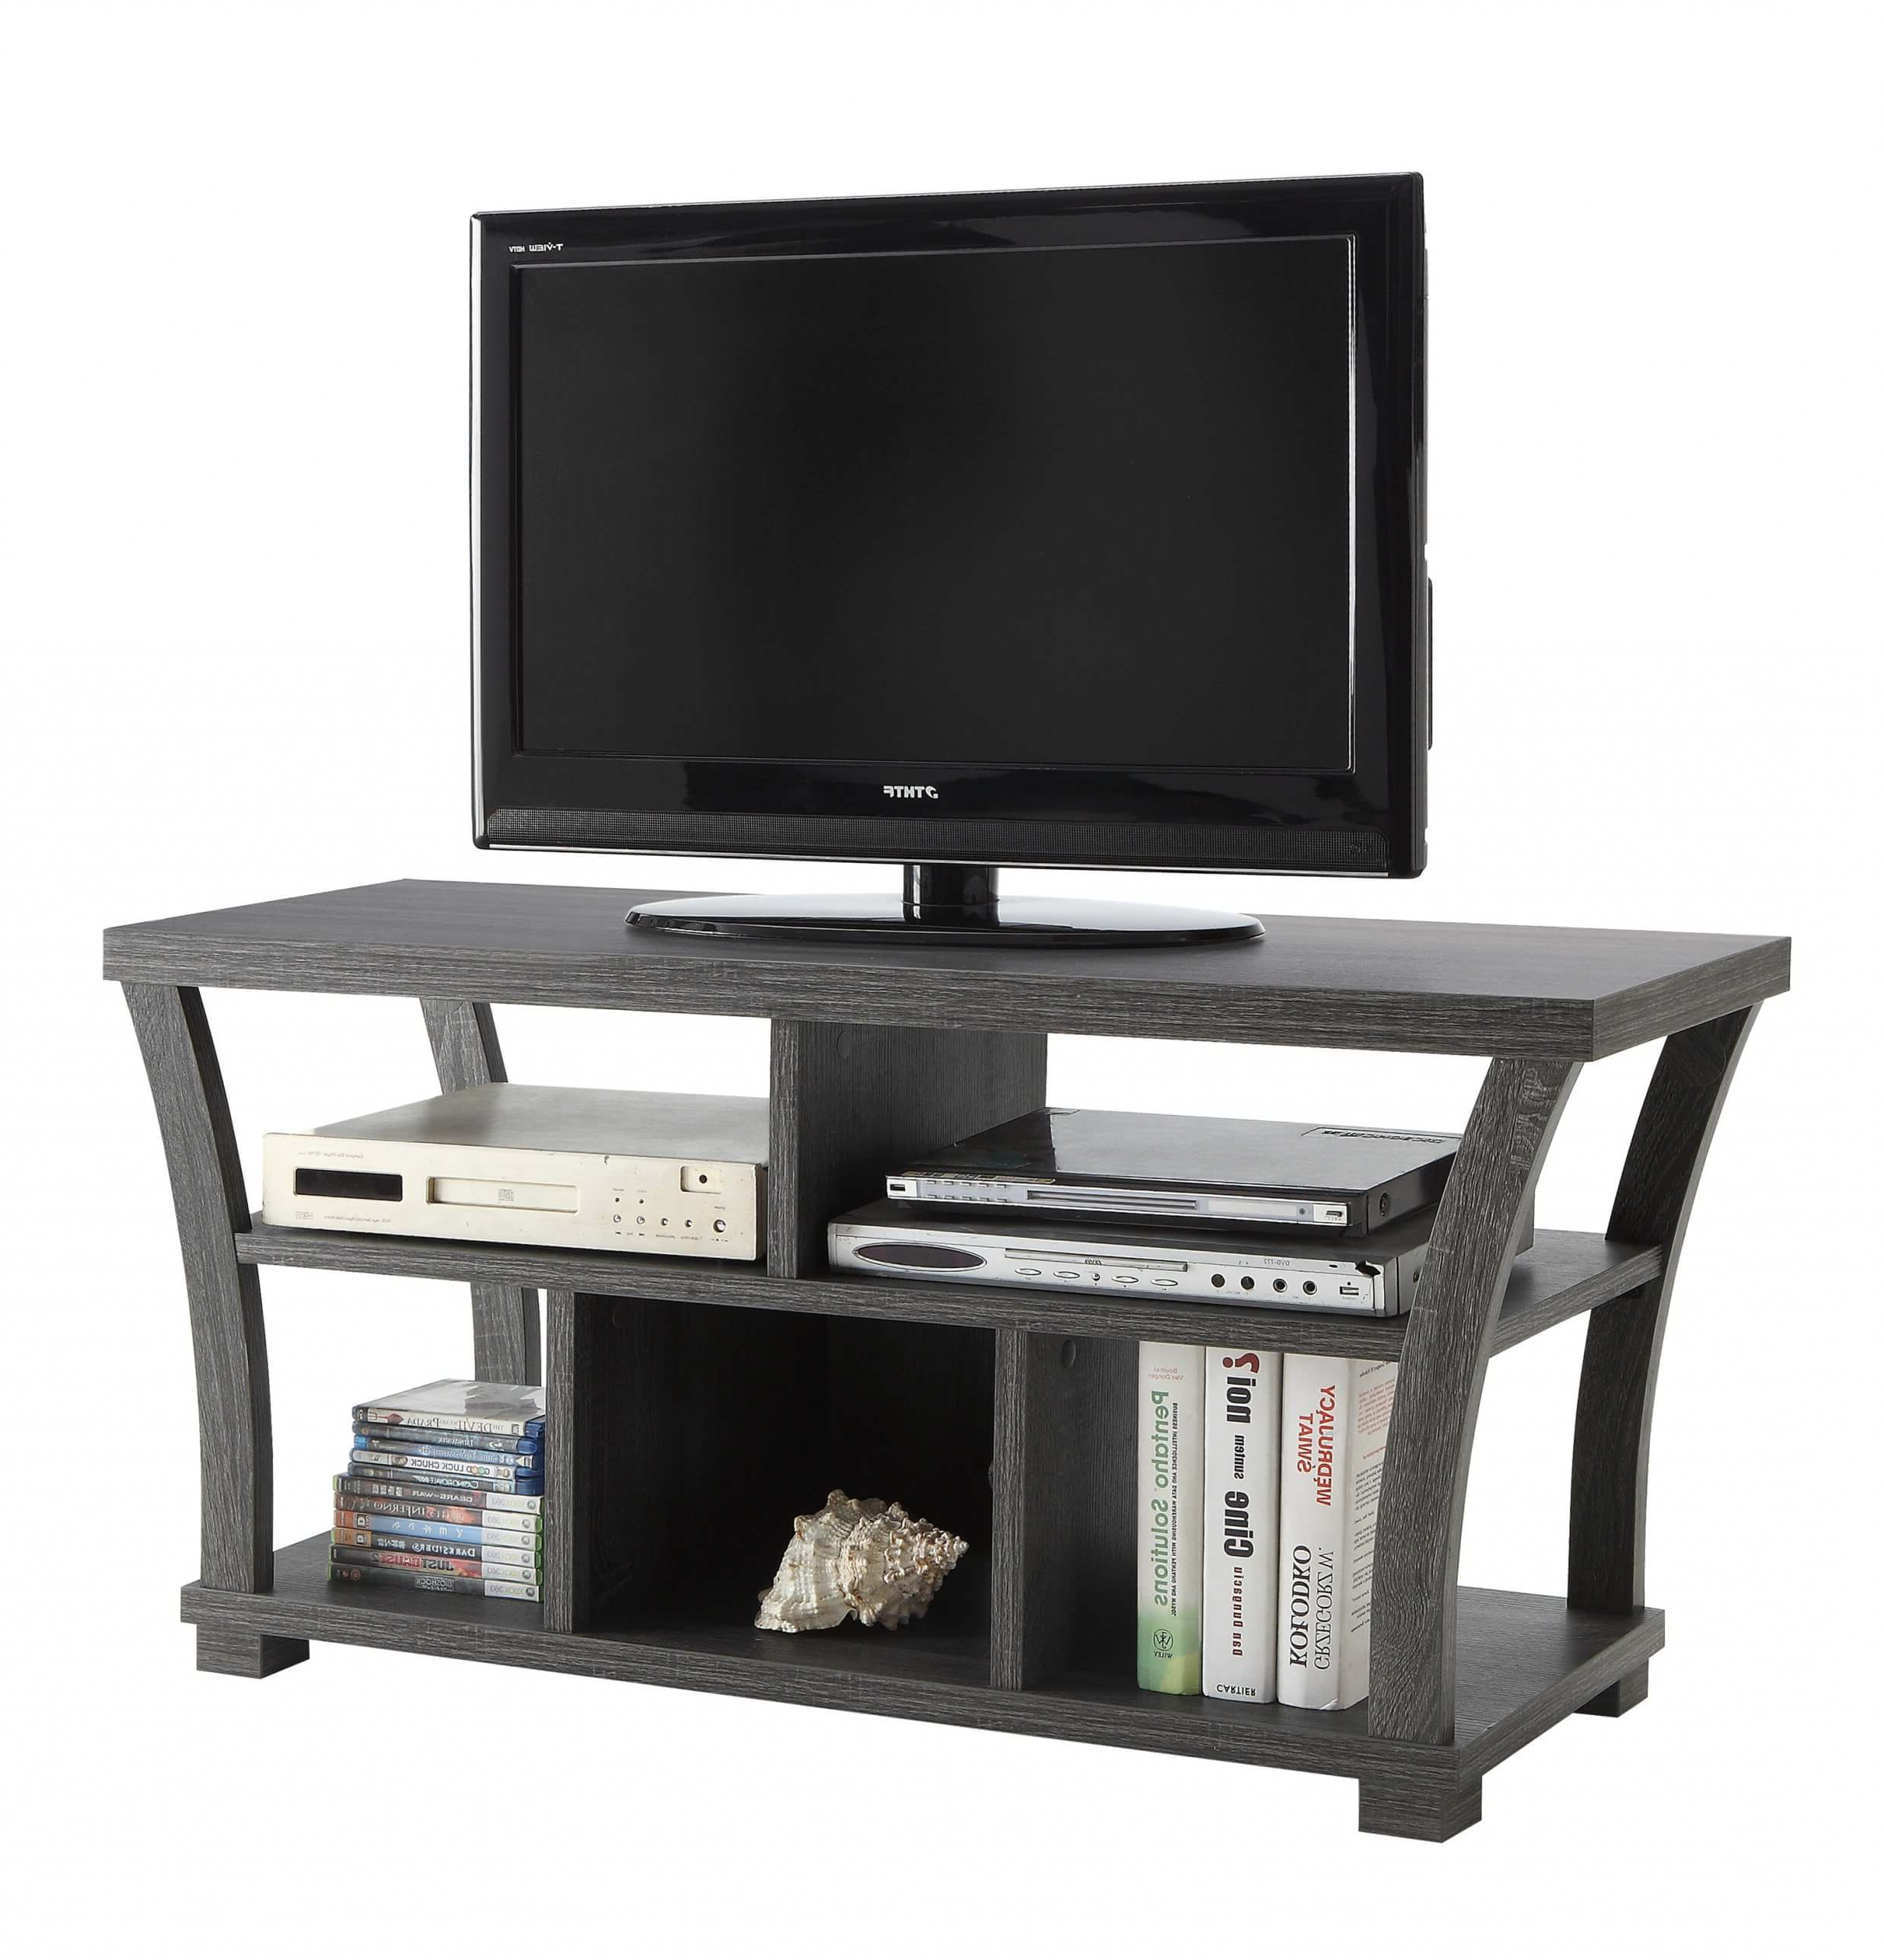 Draper Tv Stand For Tvs Up To 50 Inches (View 13 of 25)